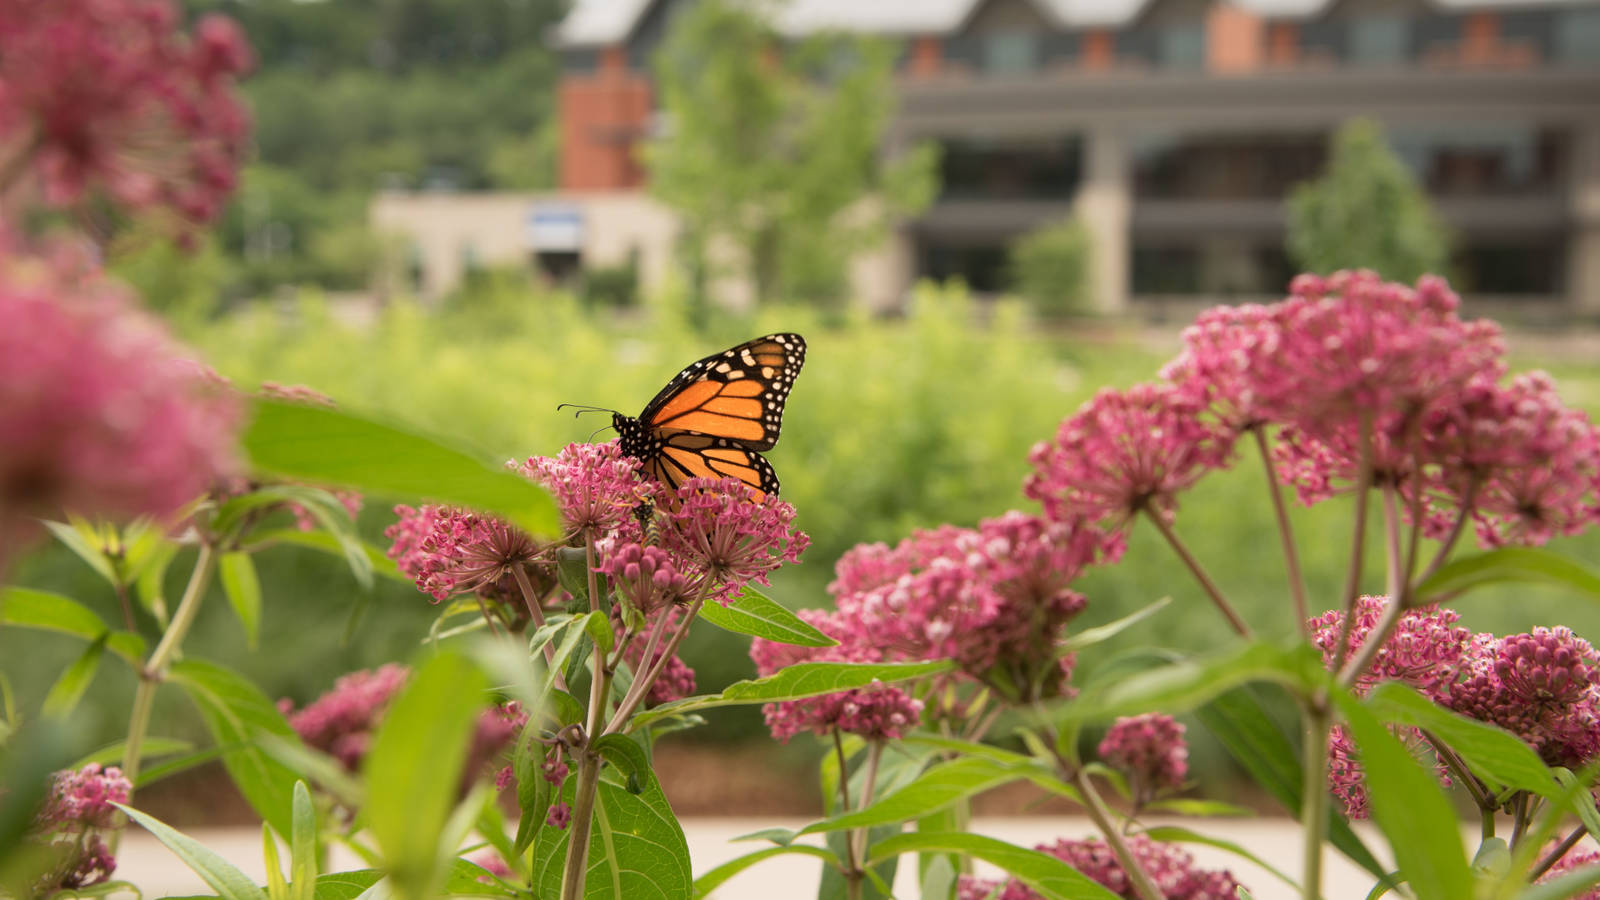 Butterfly landing on flower at UWEC quad